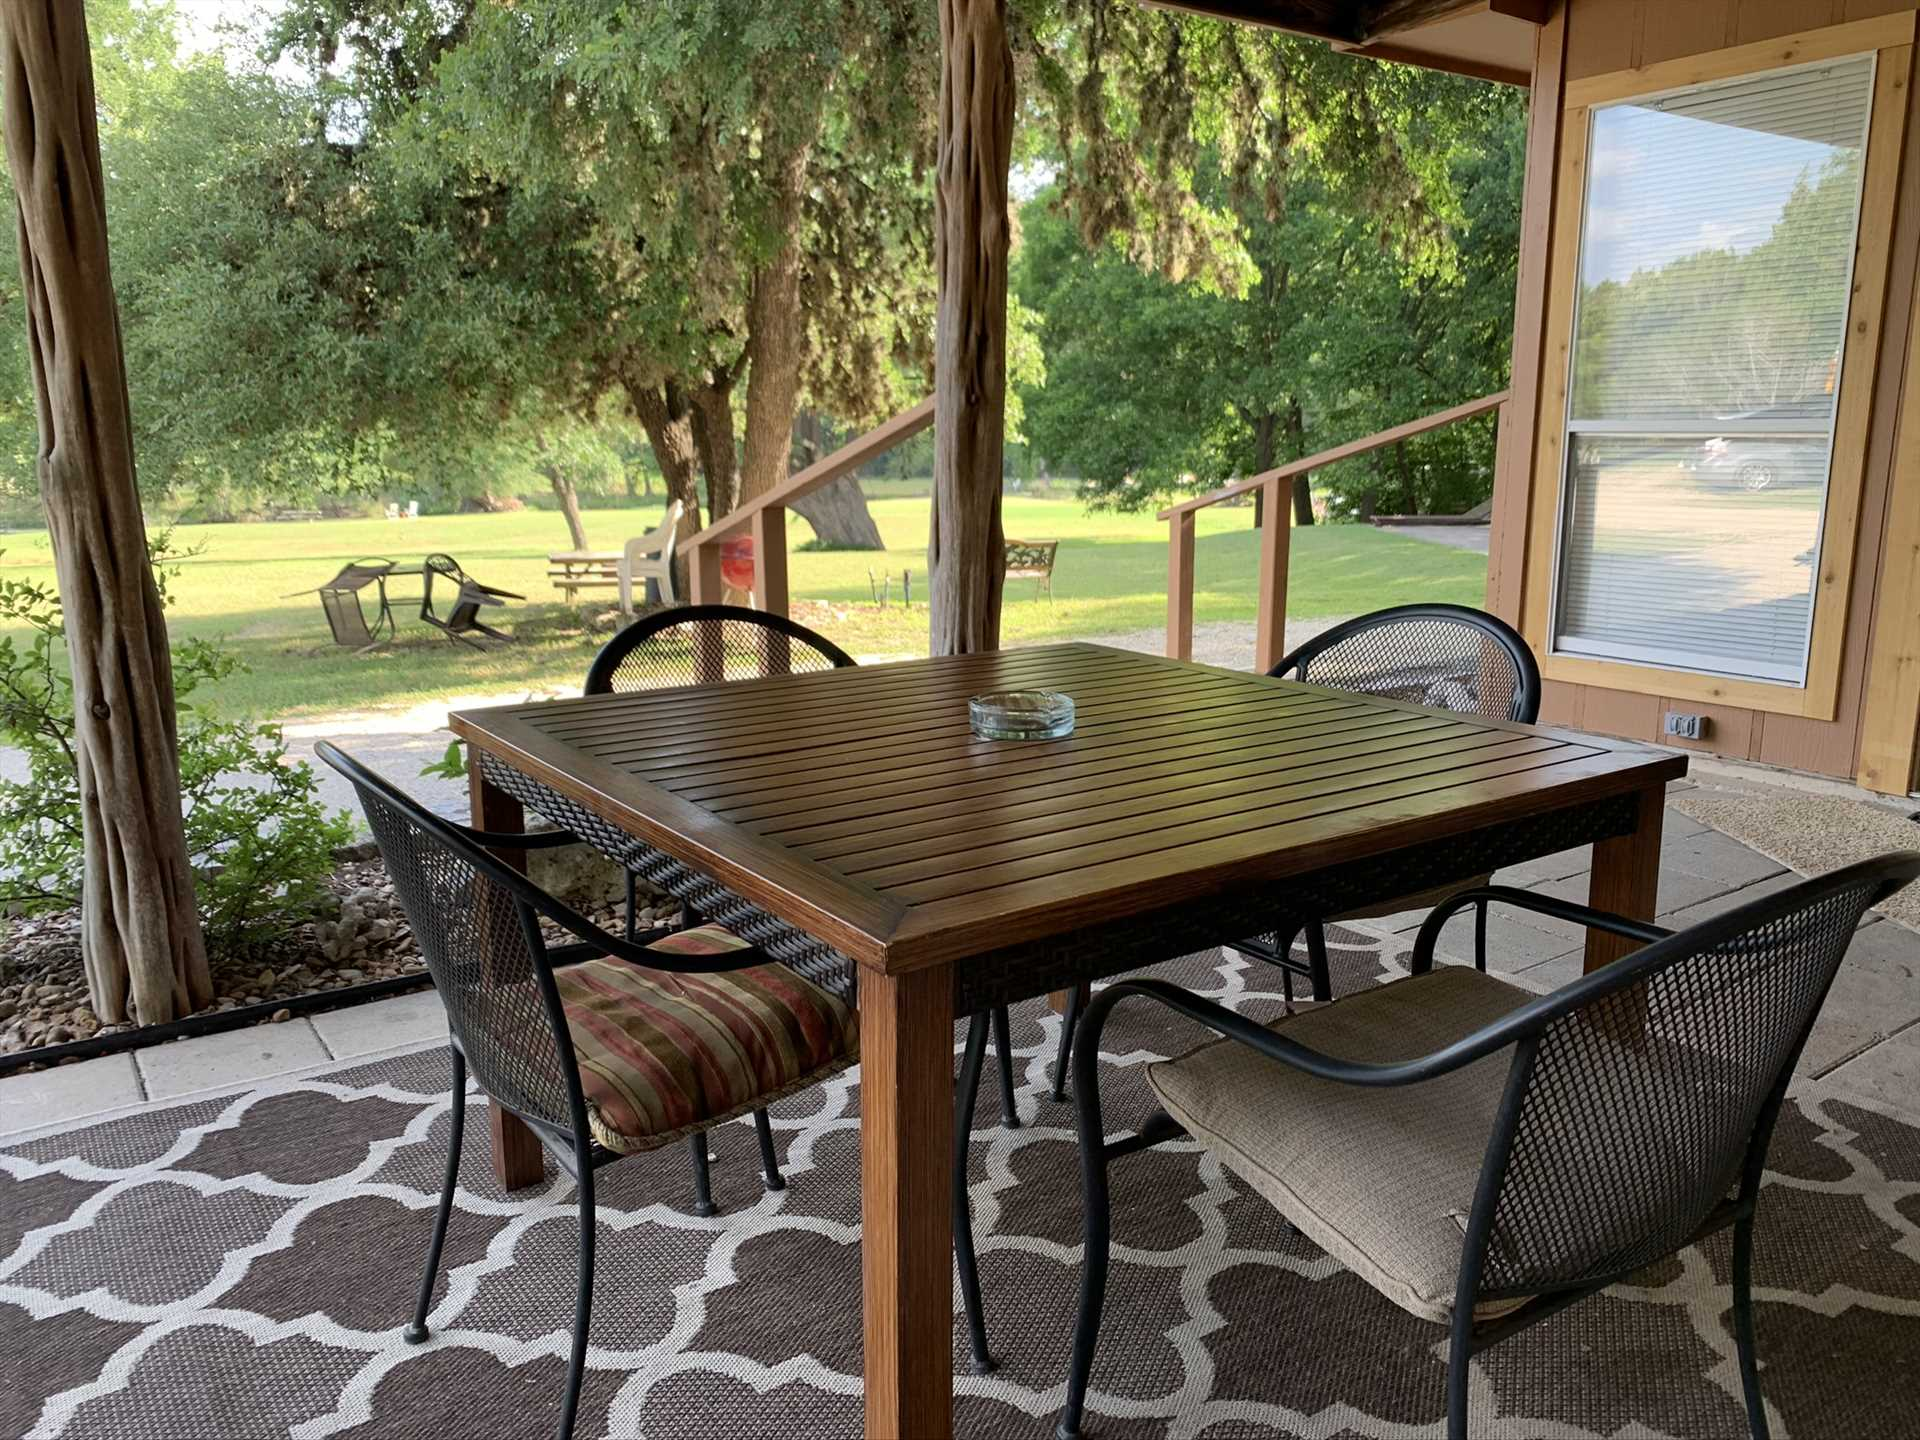 Greet a new day, or savor an evening breeze, in your peaceful and private outdoor space.